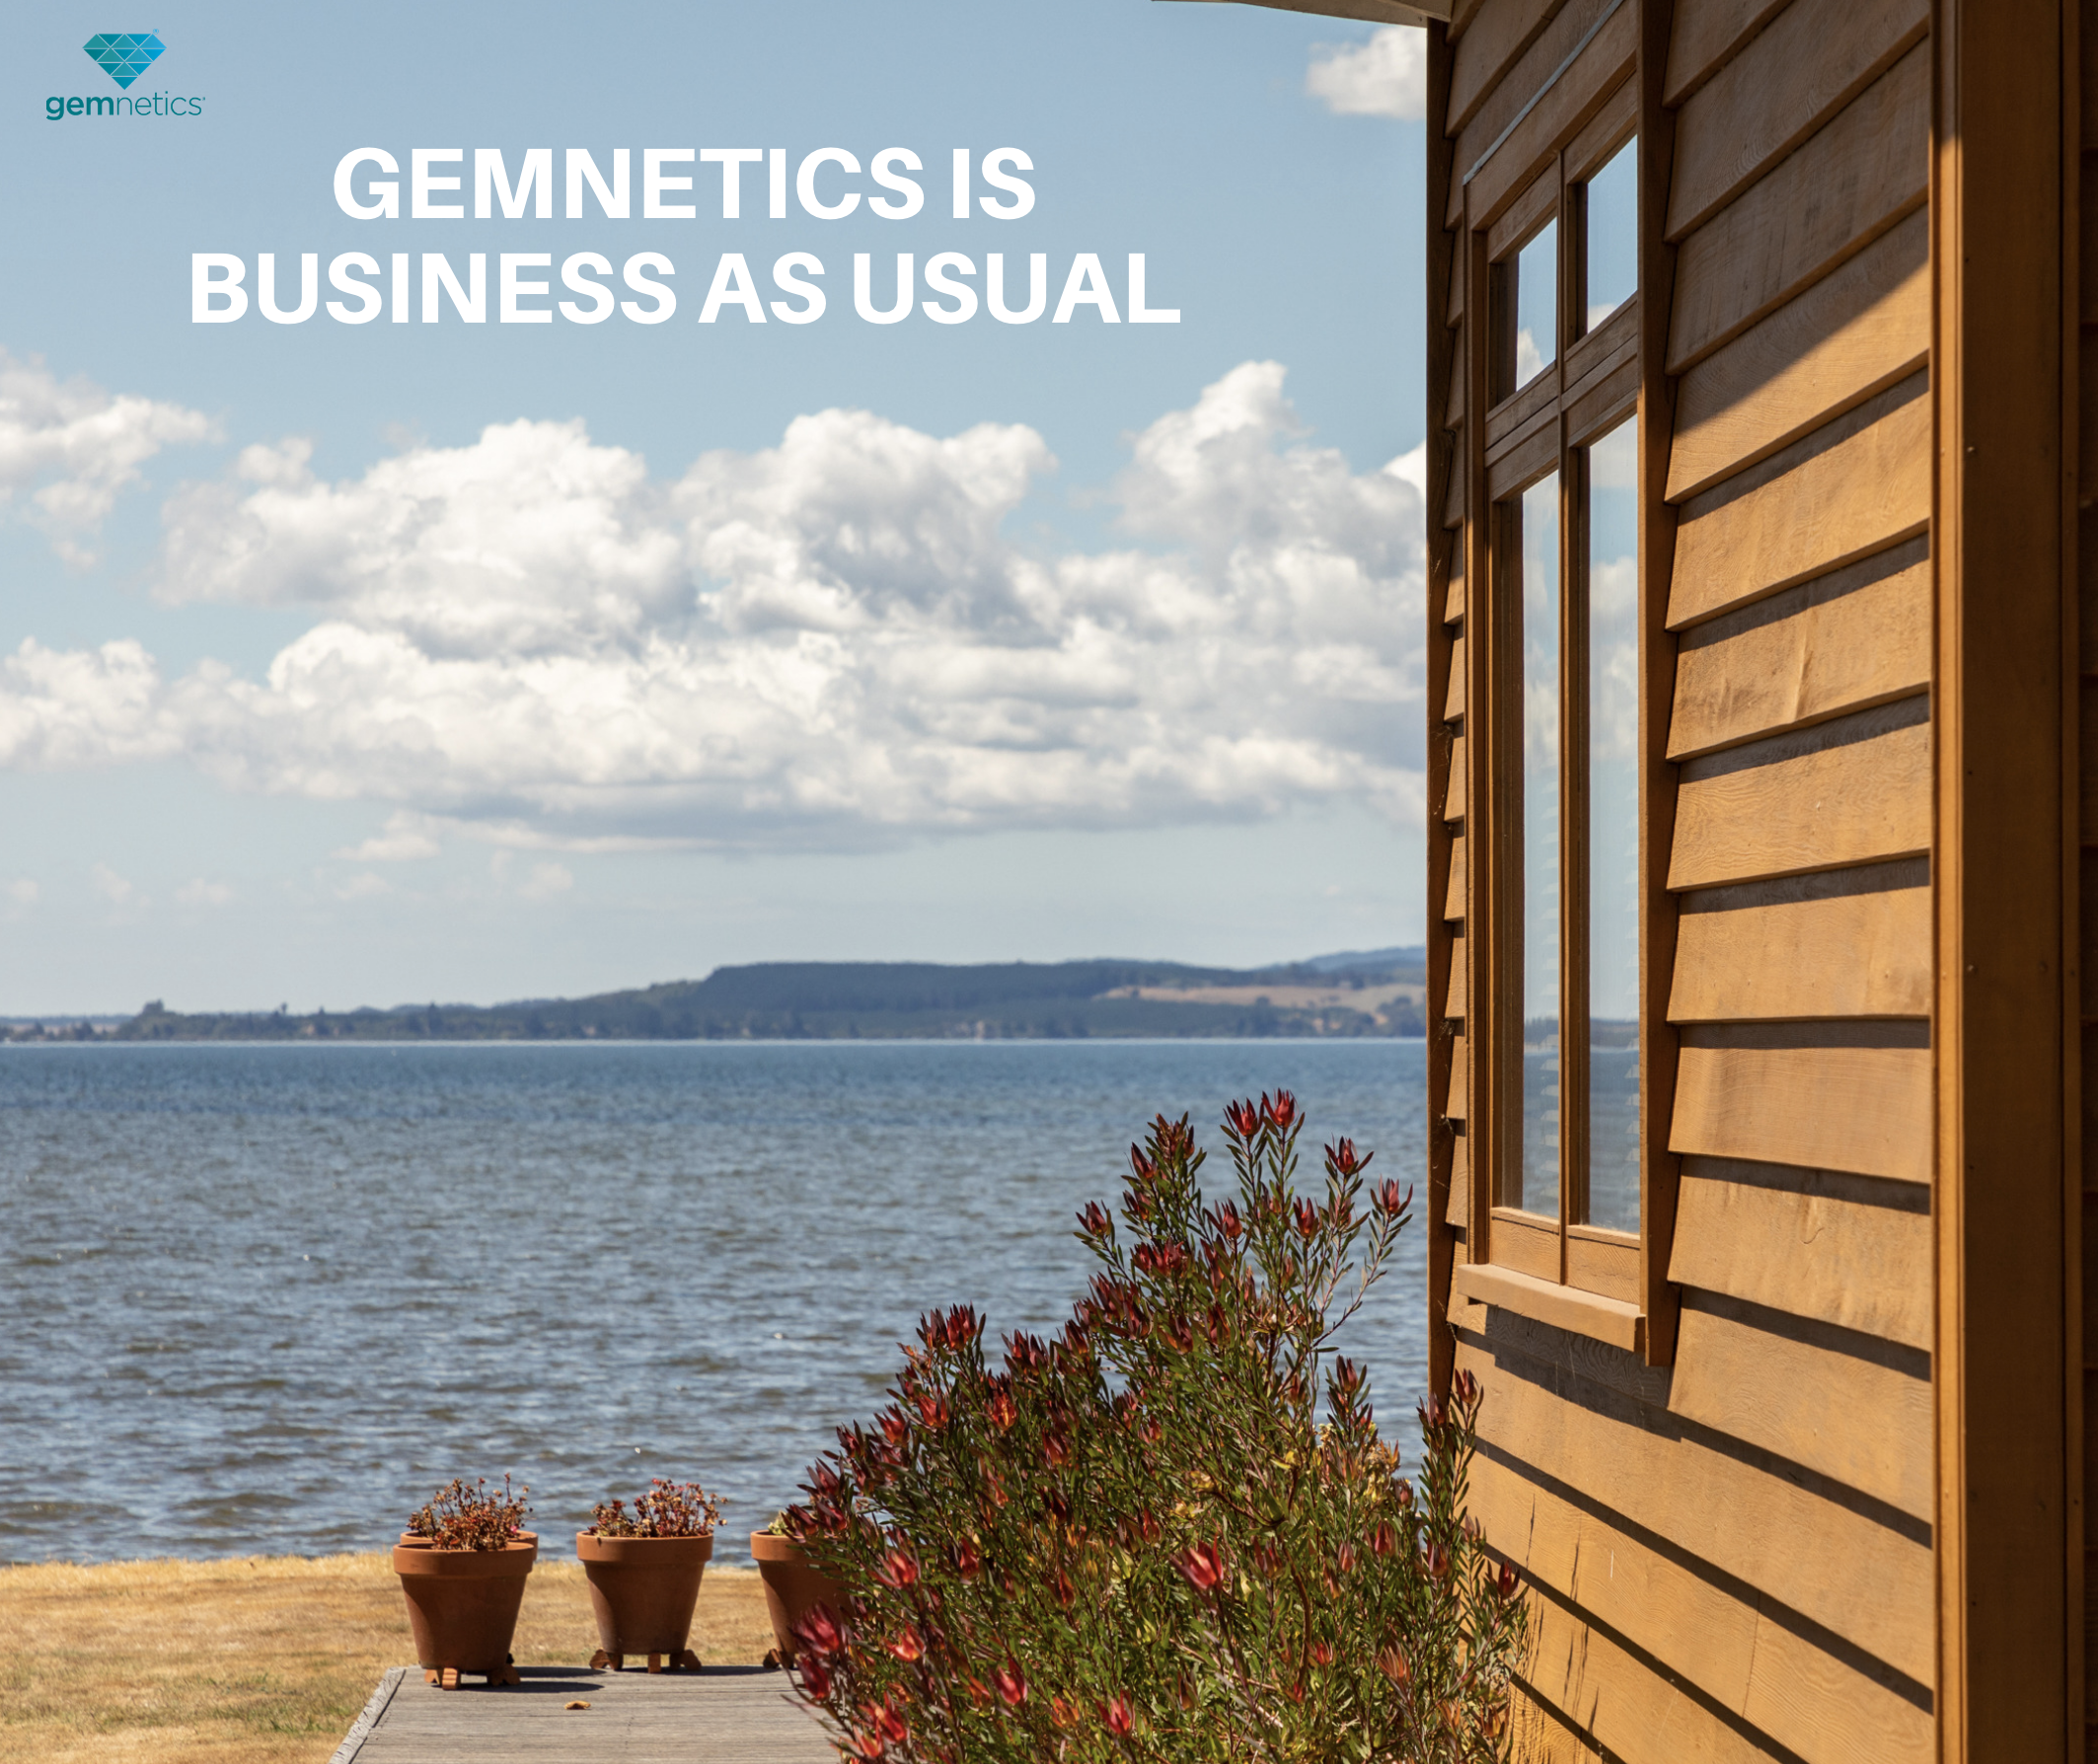 For Gemnetics it's business as usual, and Gemview continues without interruption